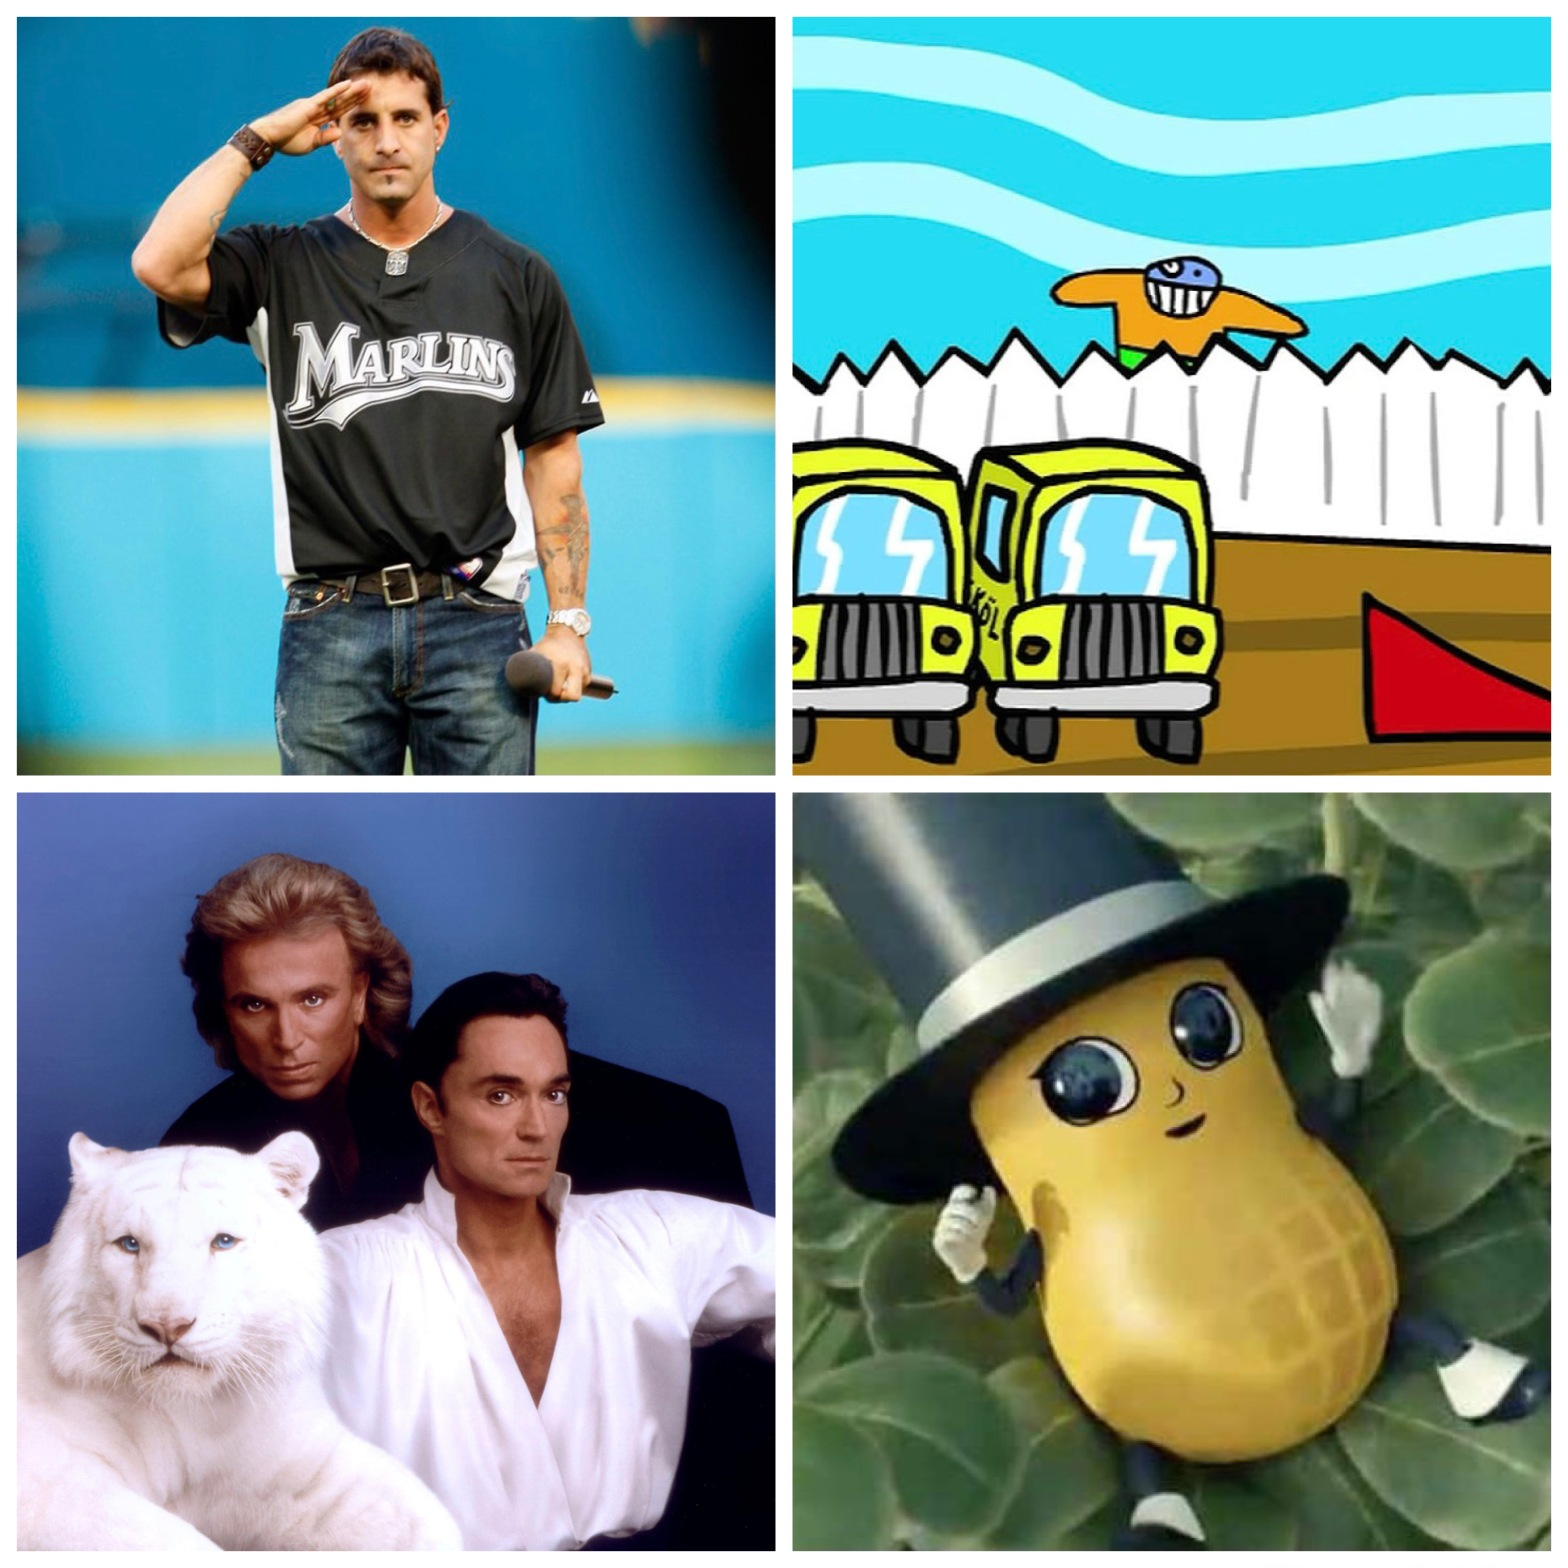 Scott Stapp in Marlins gear. Bubs from HomestarRunner-dot-com with some buses. Siegfriend and Roy. And Mr. Peanut's demon child.